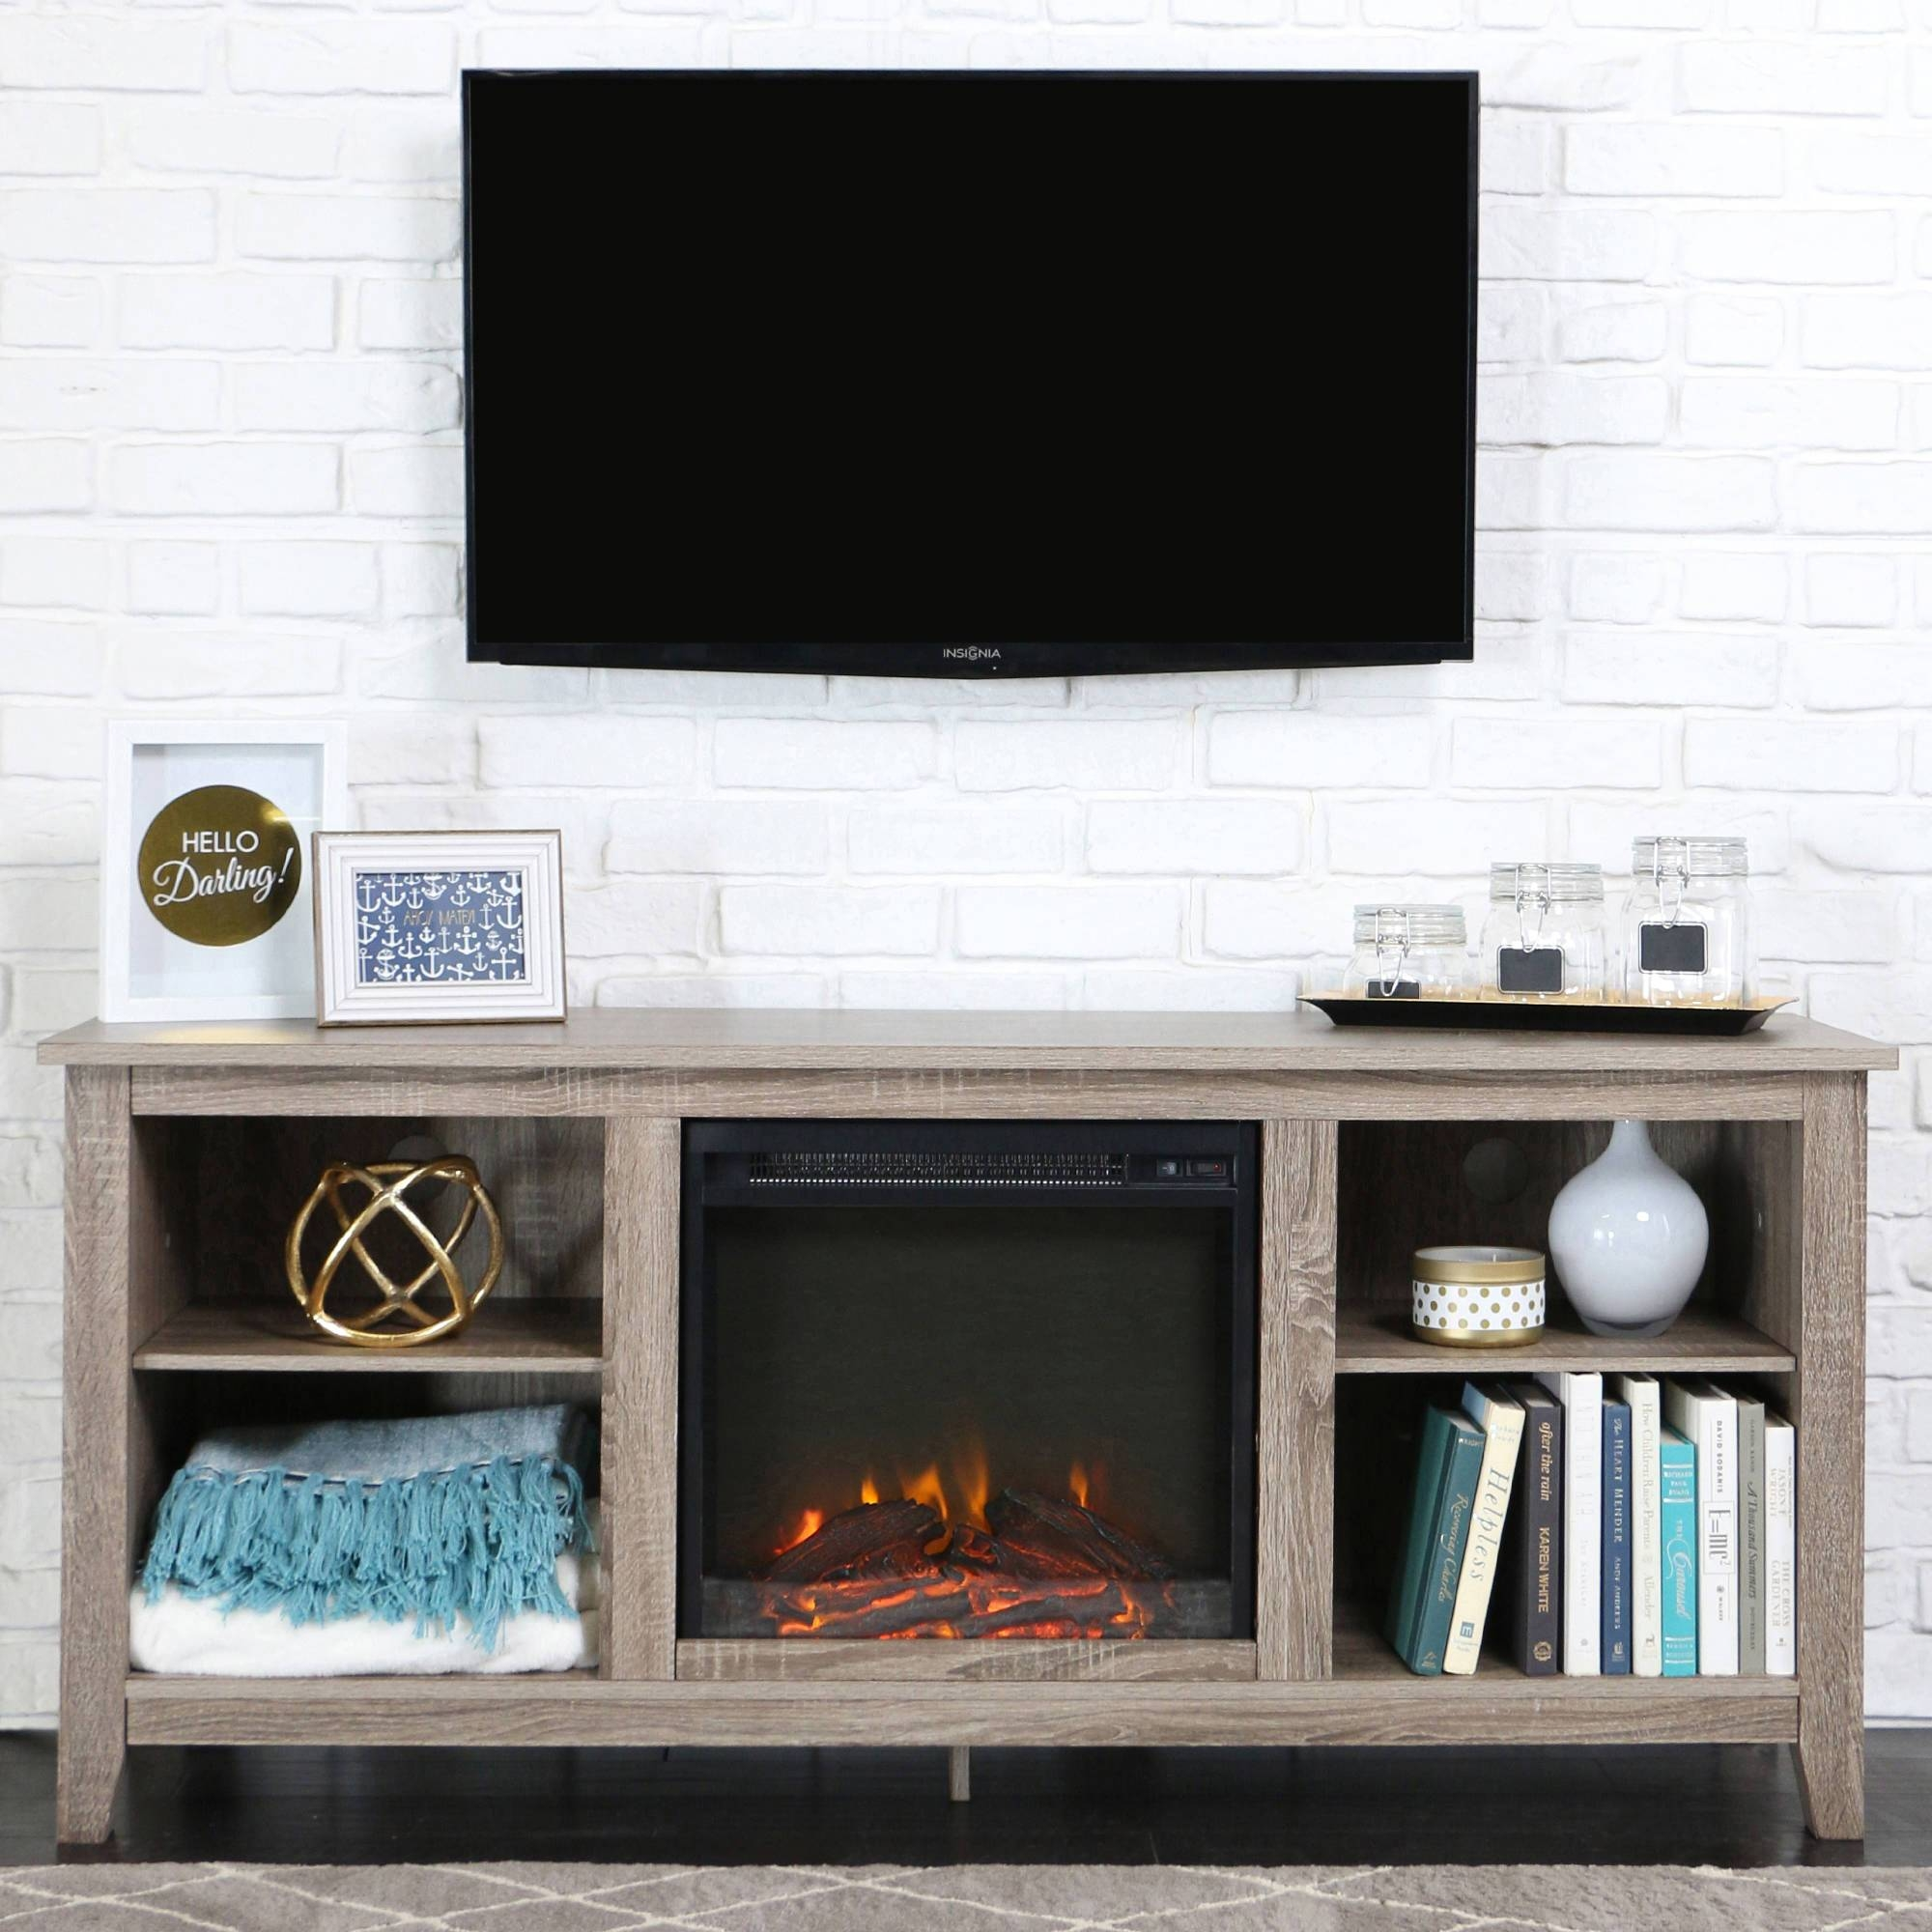 Desertsageyoga : Grey Wood Tv Stands. Modern Decorative Wall Tv for Tv Stands for 70 Inch Tvs (Image 9 of 15)